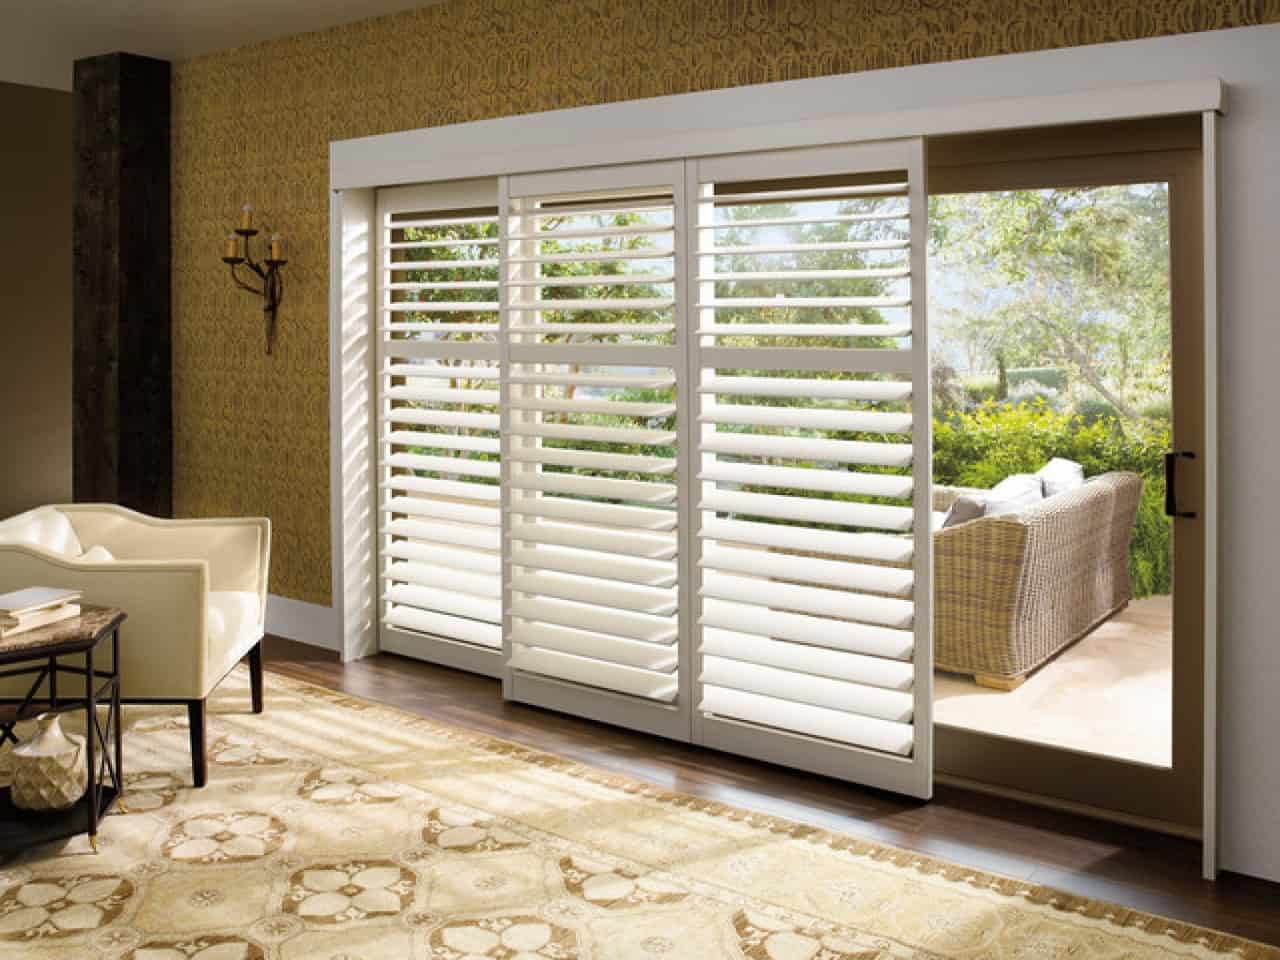 Window treatments for sliding glass doors ideas tips plantation shutters for sliding glass patio doors eventelaan Gallery